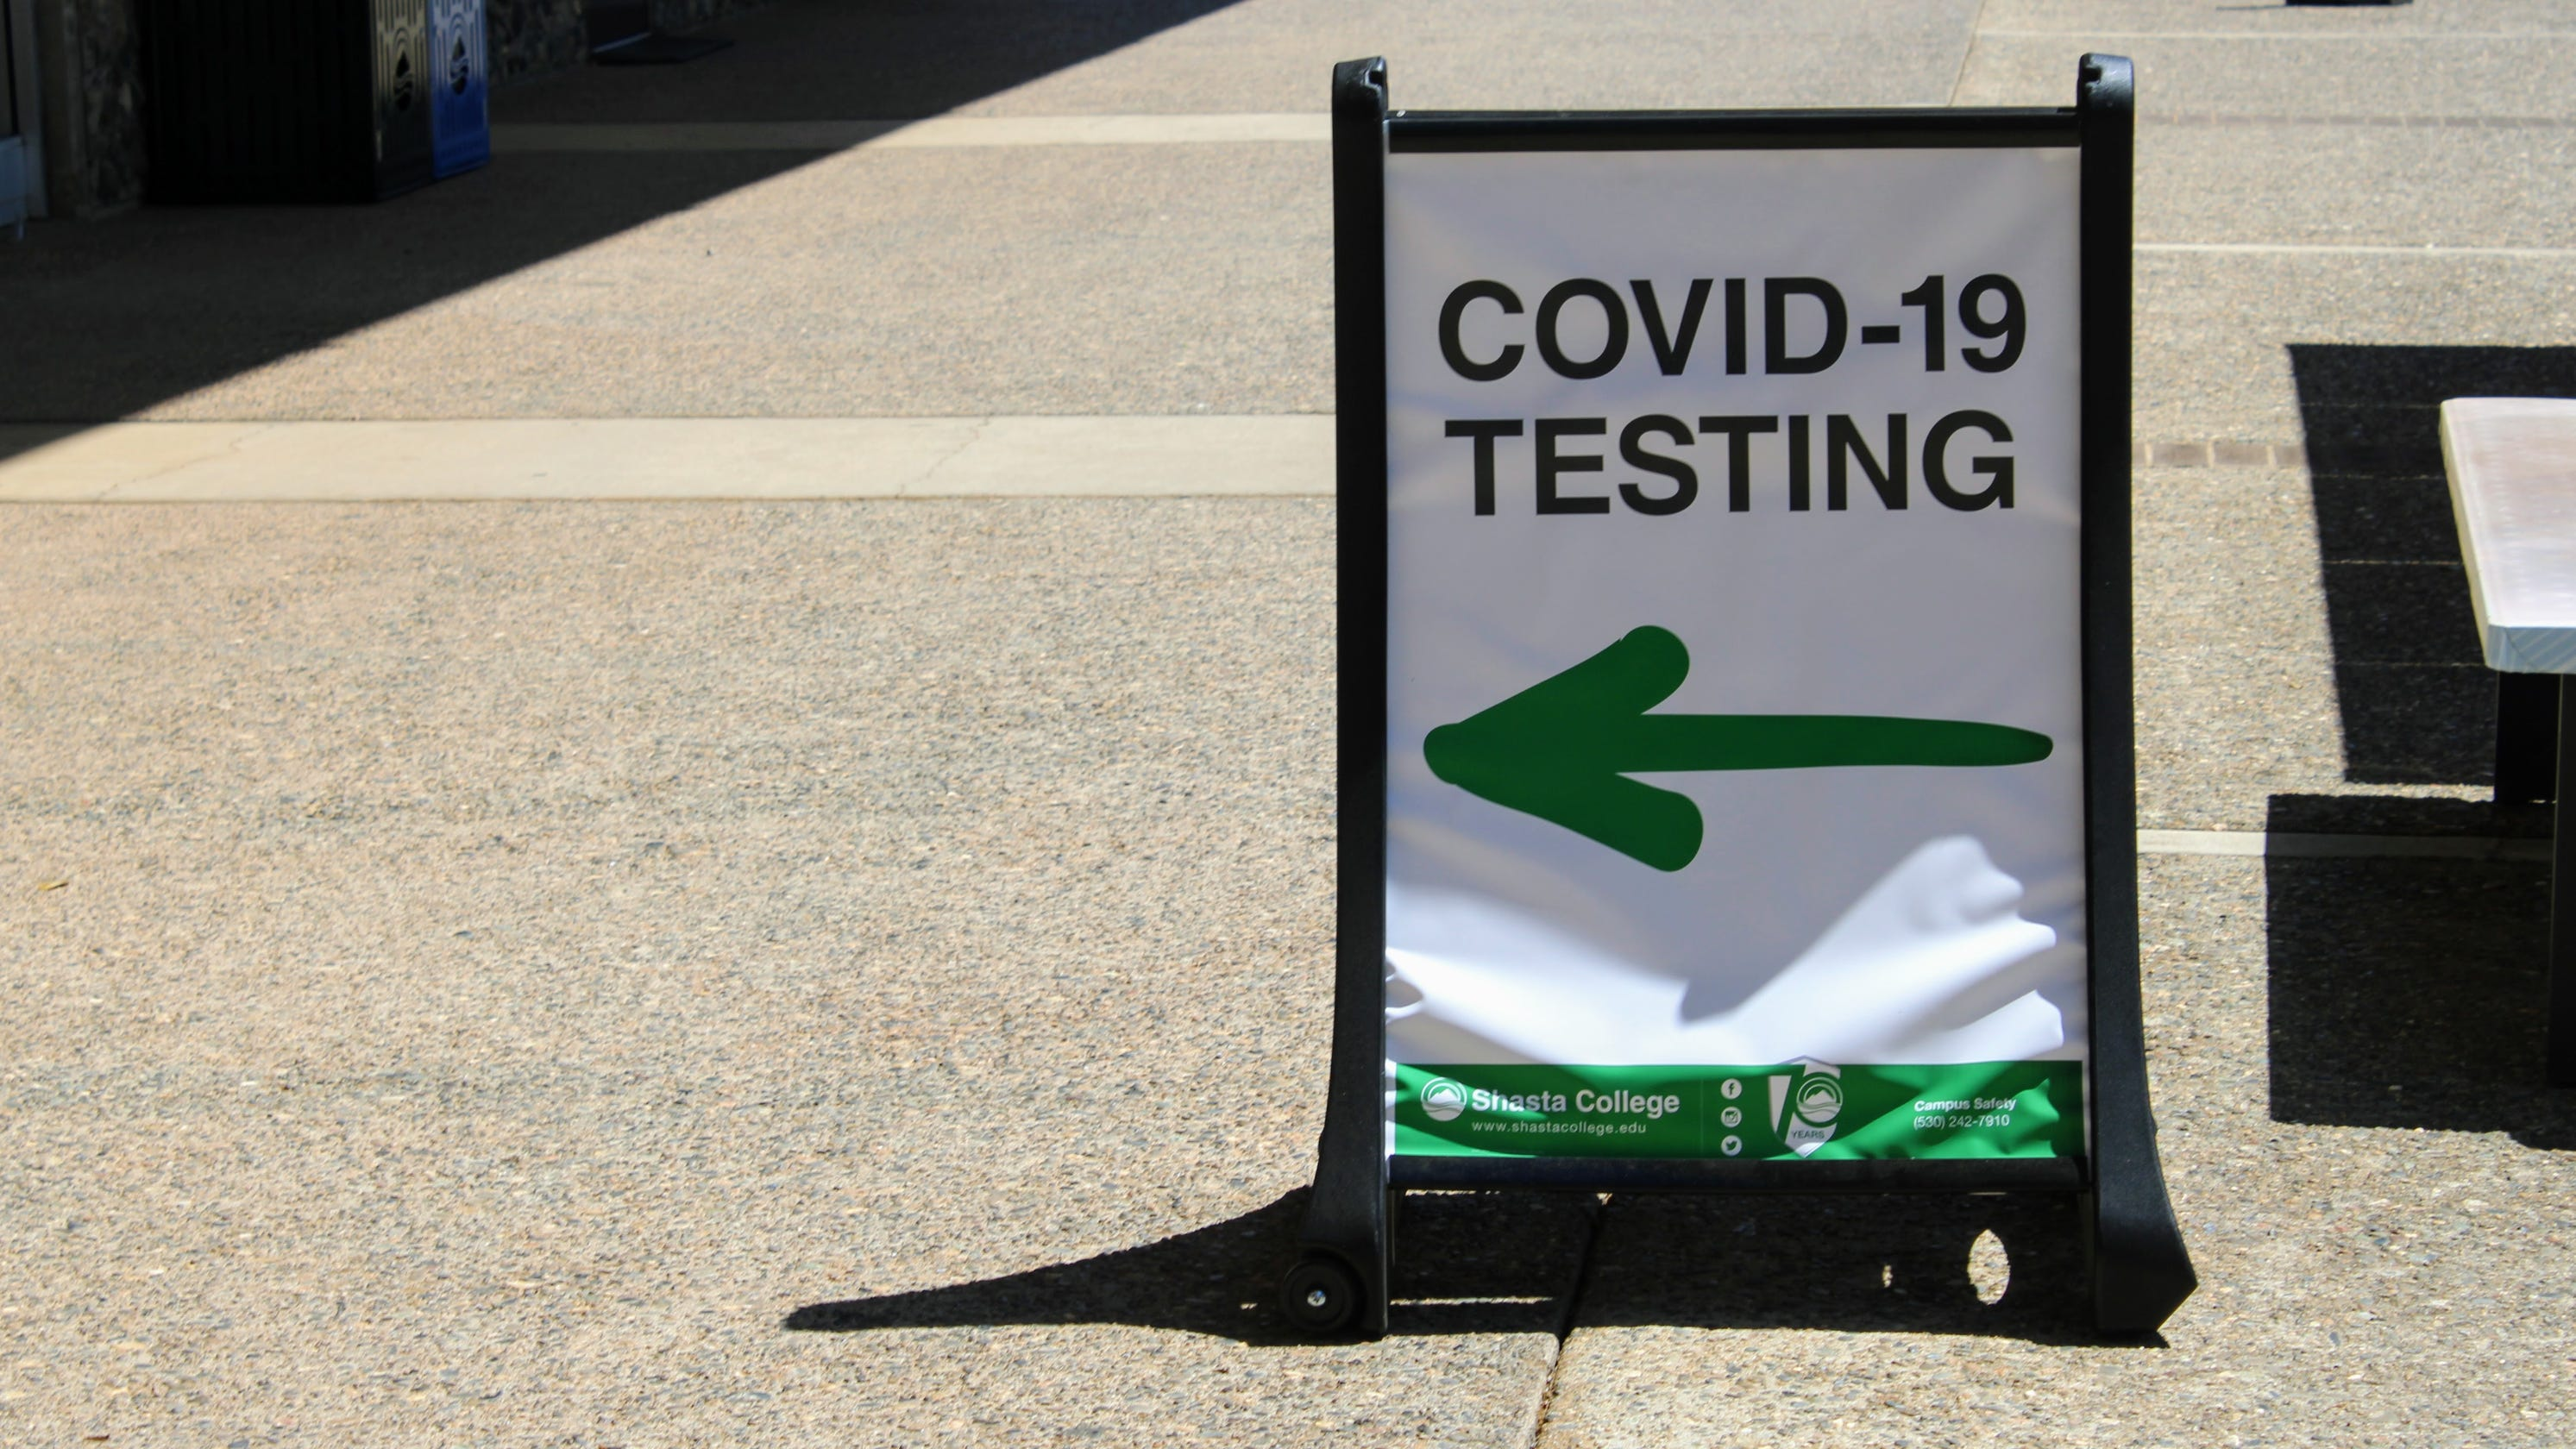 Coronavirus live updates: What we know Wednesday about COVID-19 in the North State